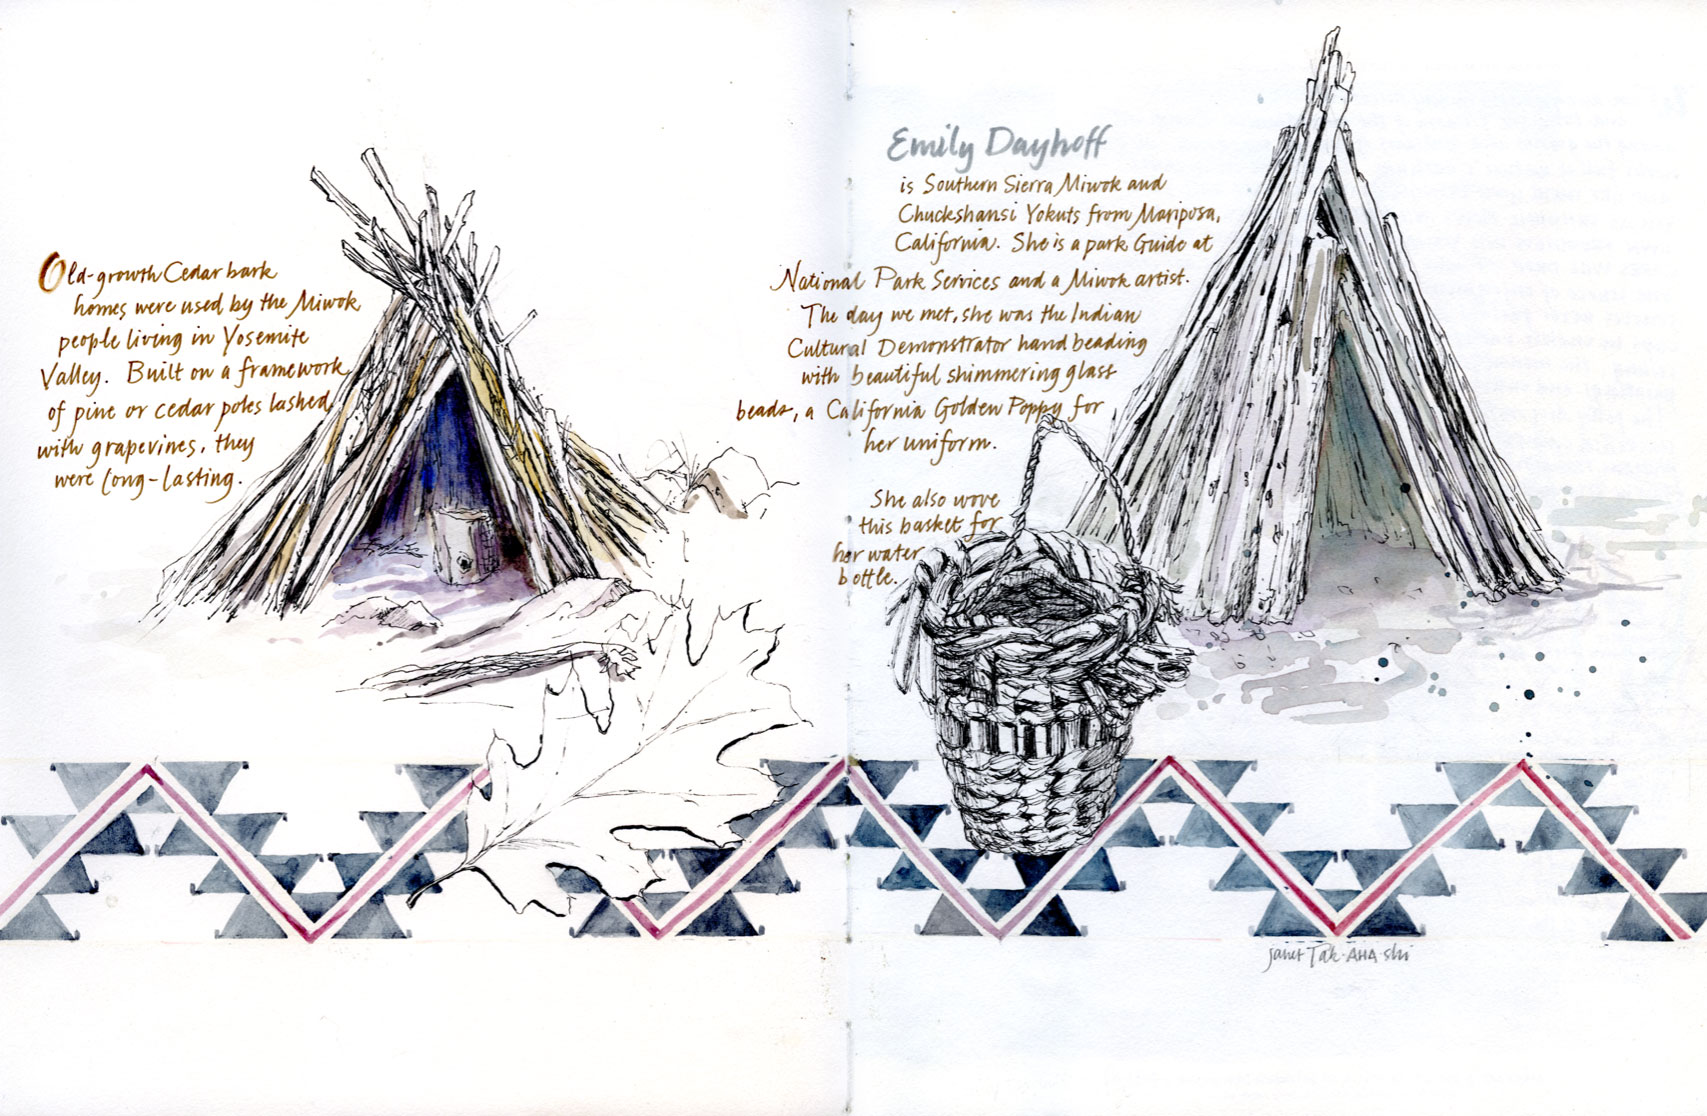 Miwok Village sketch by Janet Takahashi